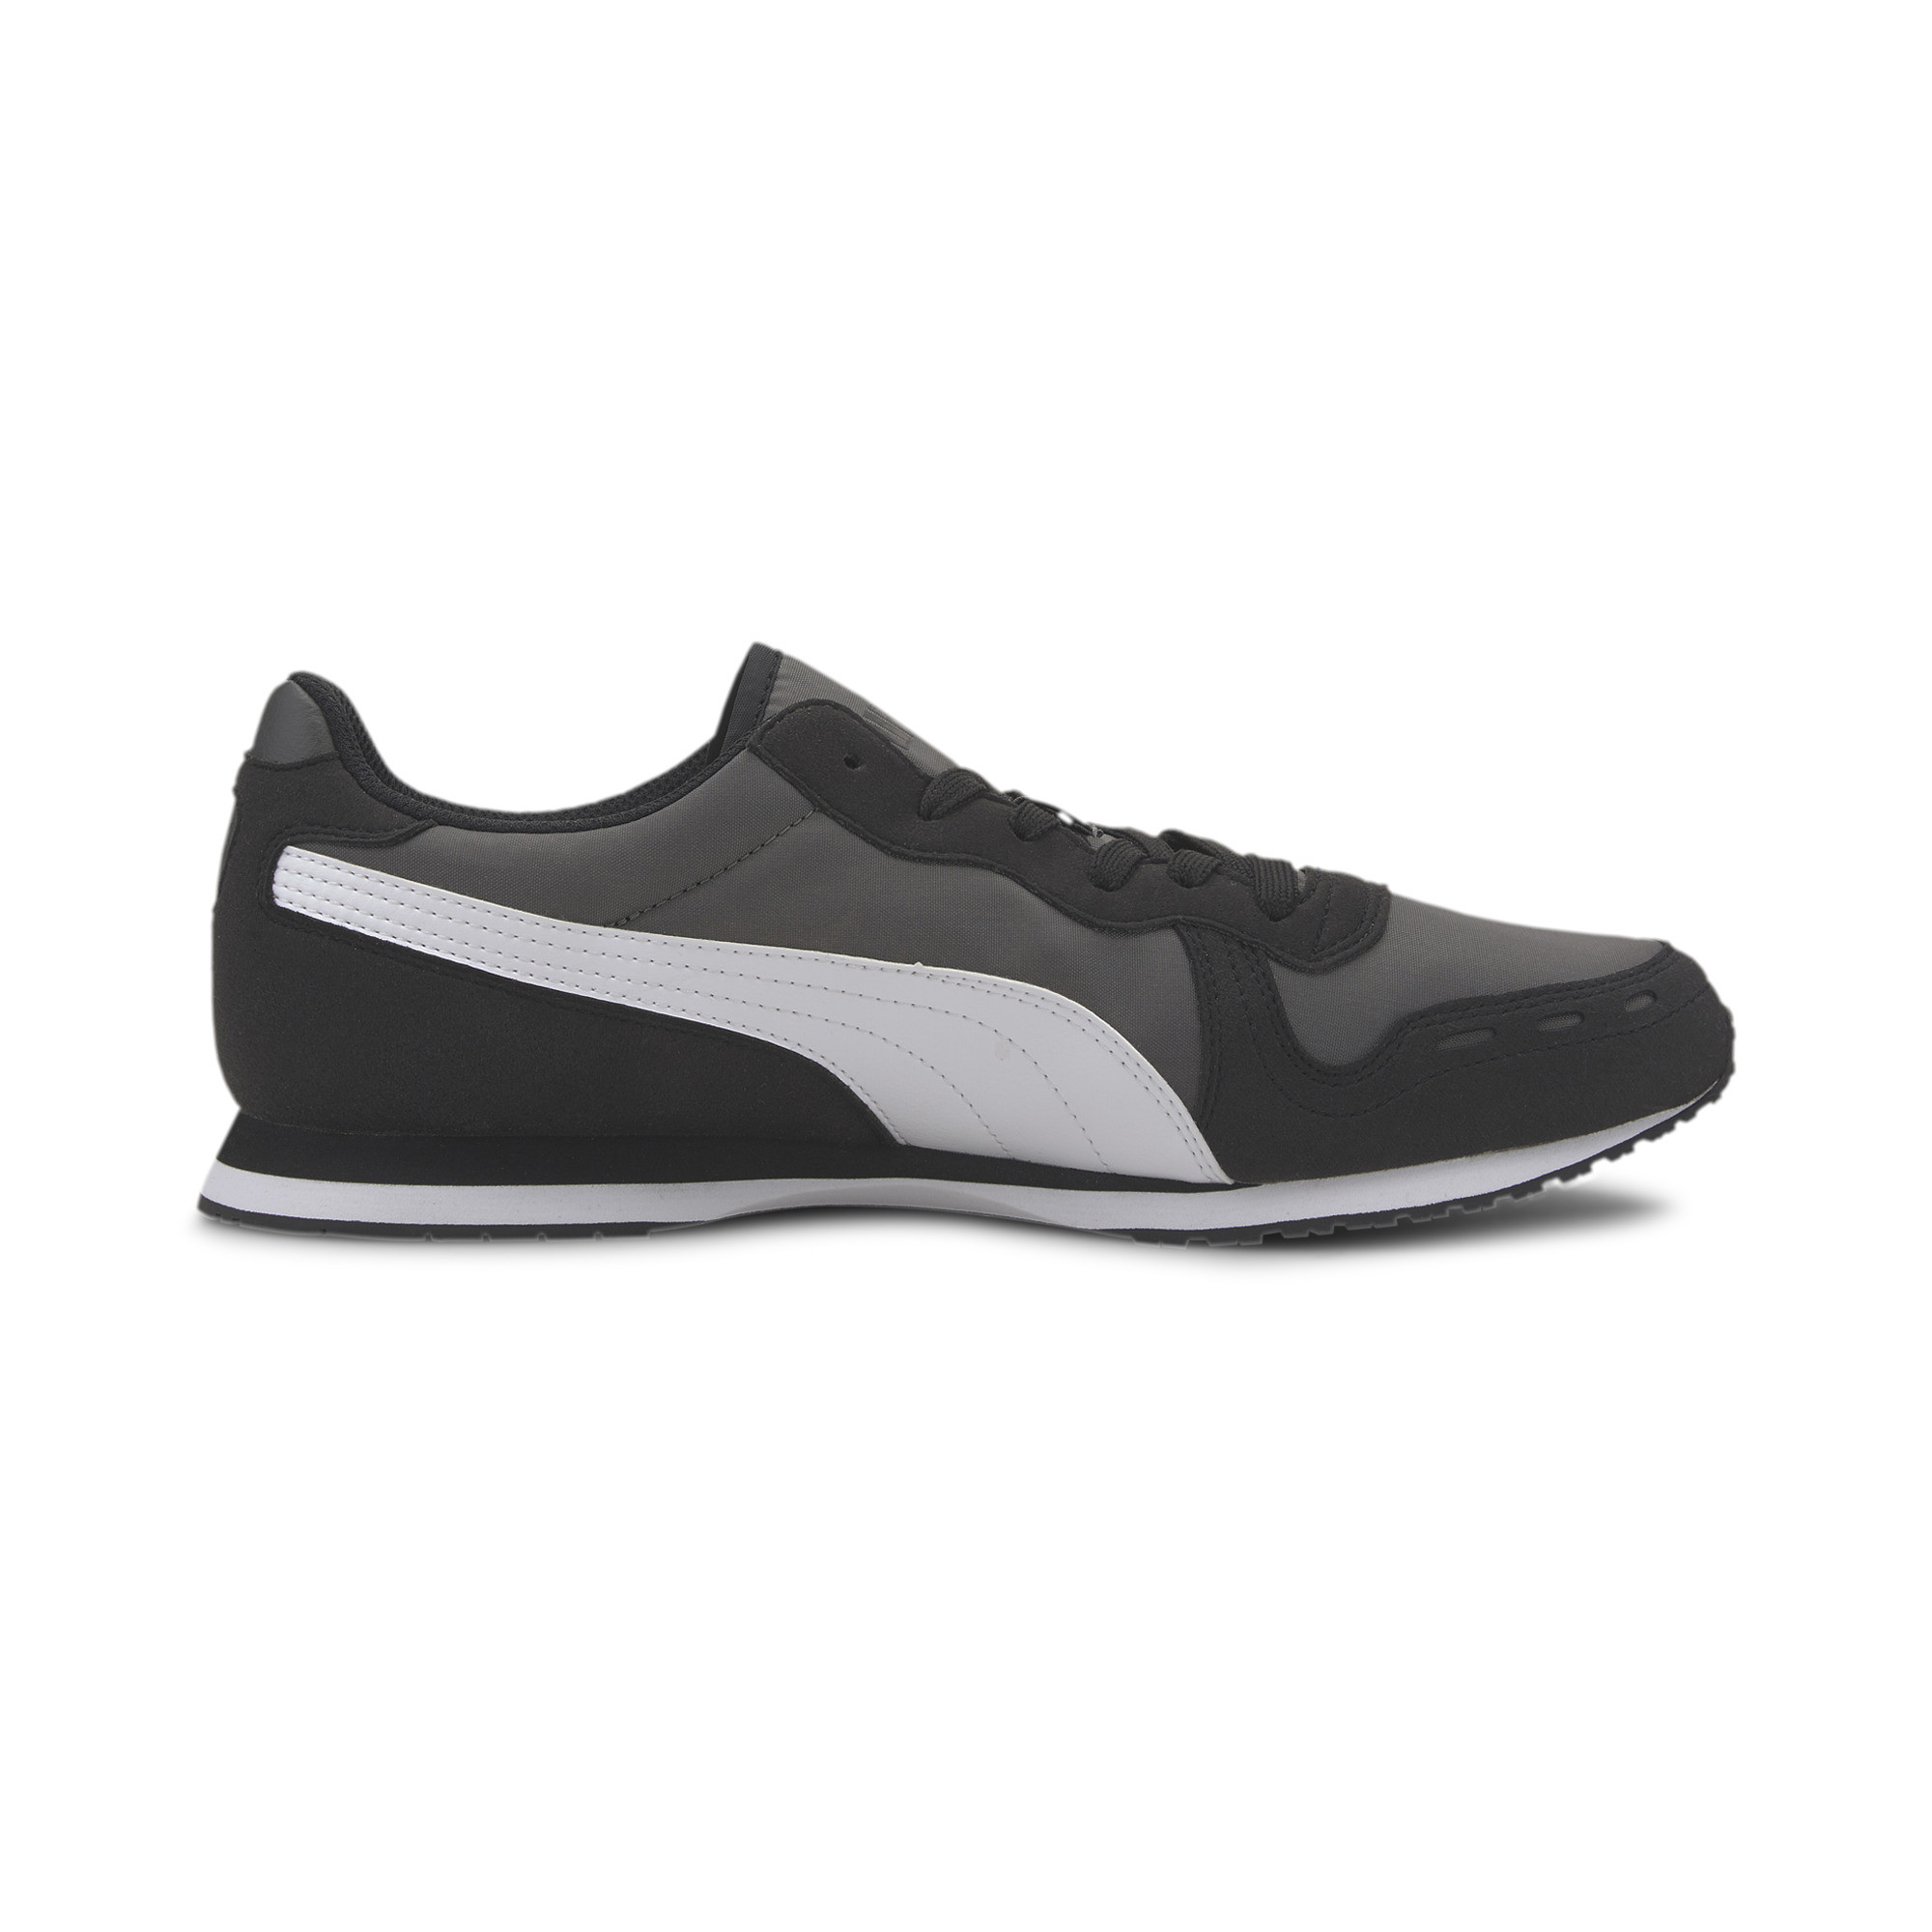 PUMA-Men-039-s-Cabana-Run-Sneakers thumbnail 14